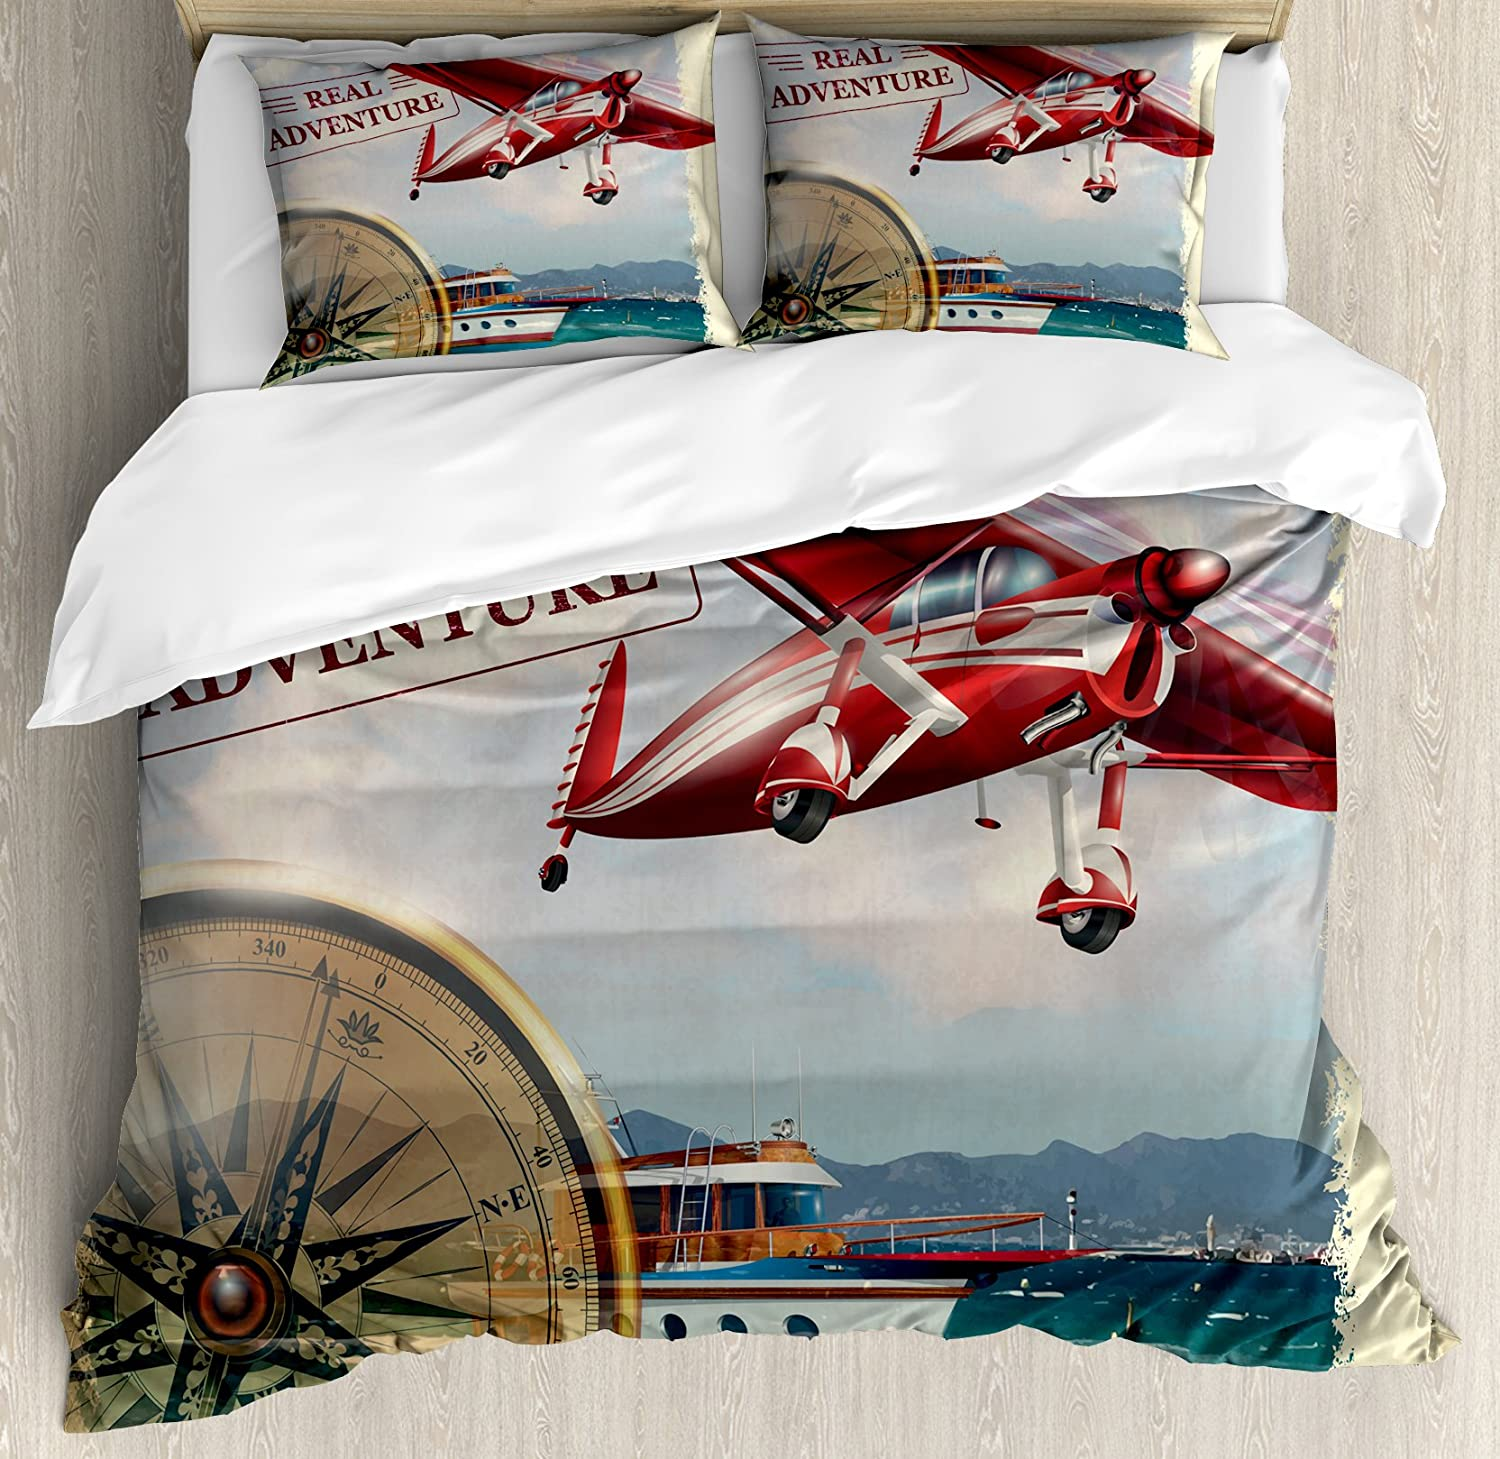 Ambesonne Adventure Duvet Cover Set, Real Adventure Words with Coastline and a Red Airplane Journey Travel Themed Art, Decorative 3 Piece Bedding Set with 2 Pillow Shams, Queen Size, Ruby Beige